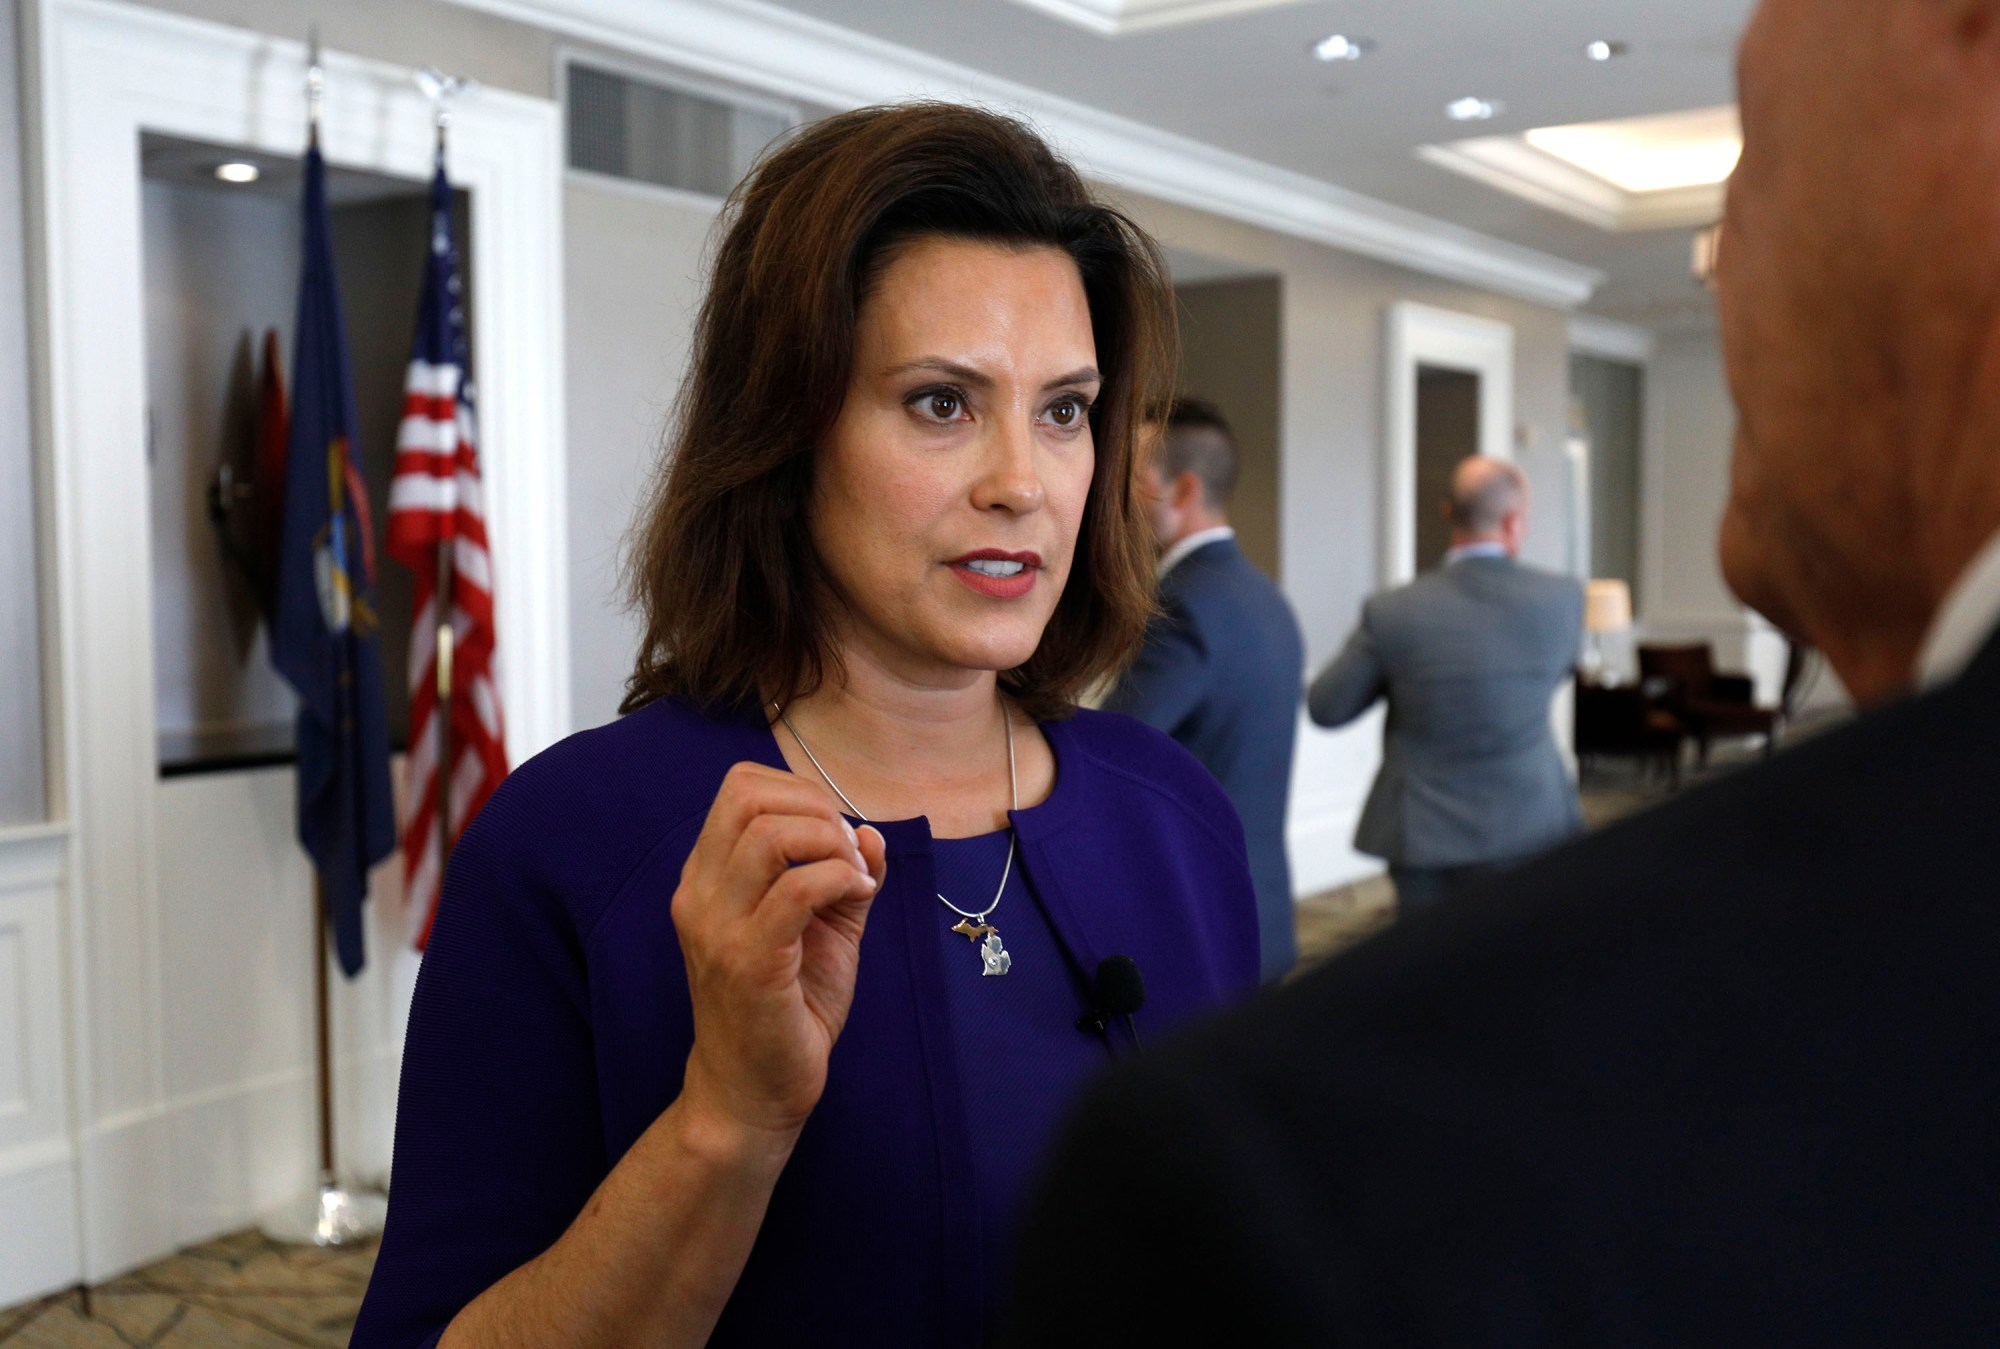 Gretchen Whitmer speaks with a reporter after a Democrat Unity Rally at the Westin Book Cadillac Hotel Aug. 8, 2018 in Detroit, Michigan. (Credit: Bill Pugliano/Getty Images)